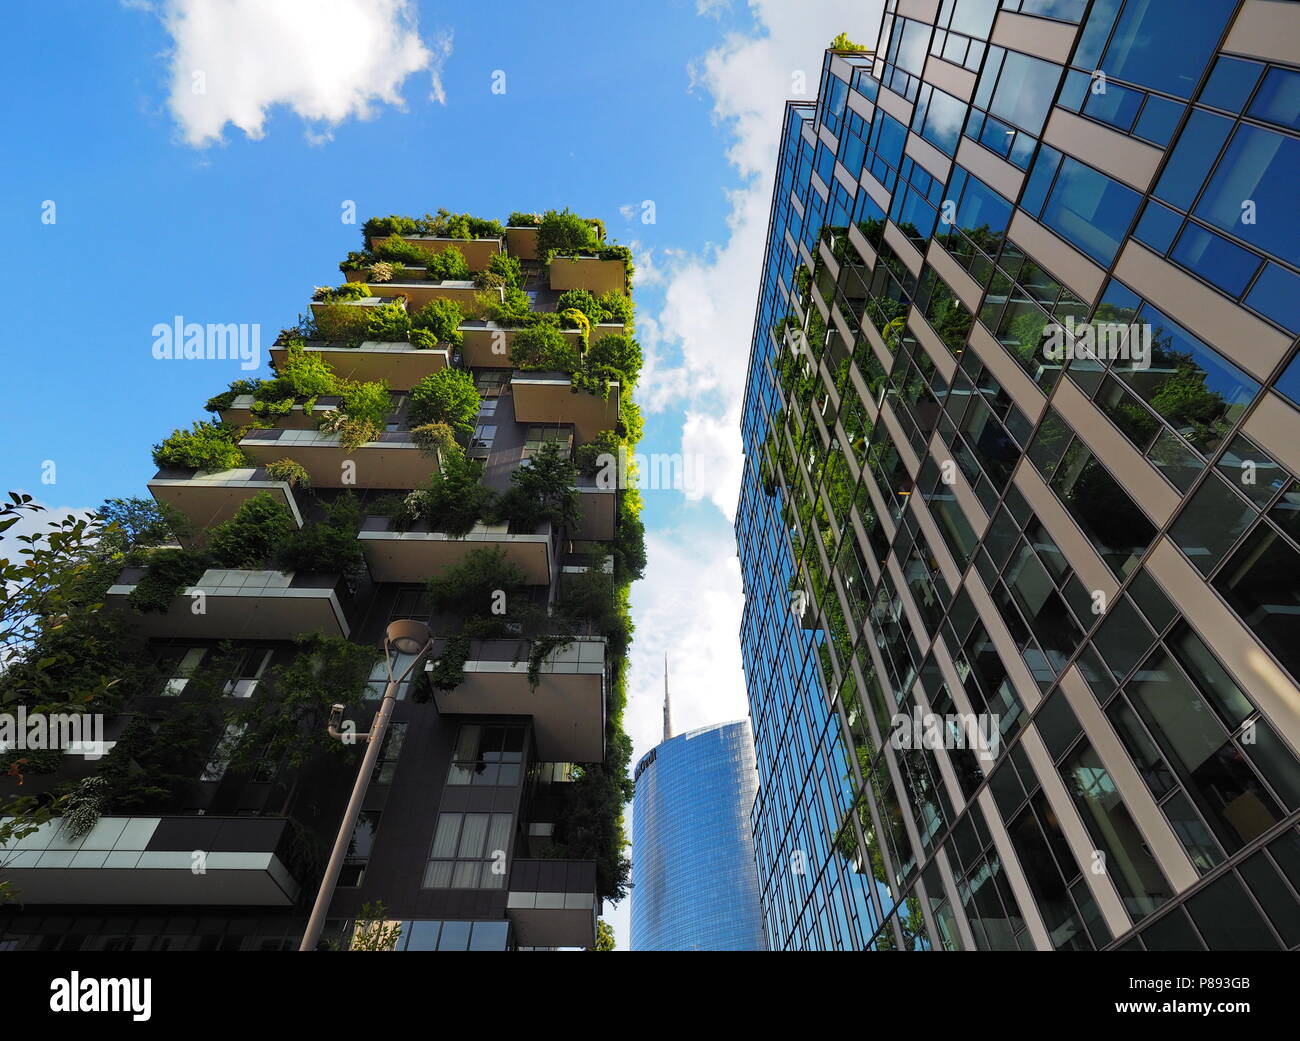 MILAN, ITALY - May 12, 2018: Bosco Verticale - Vertical Forest skyscraper with trees growing on balconies. Stock Photo